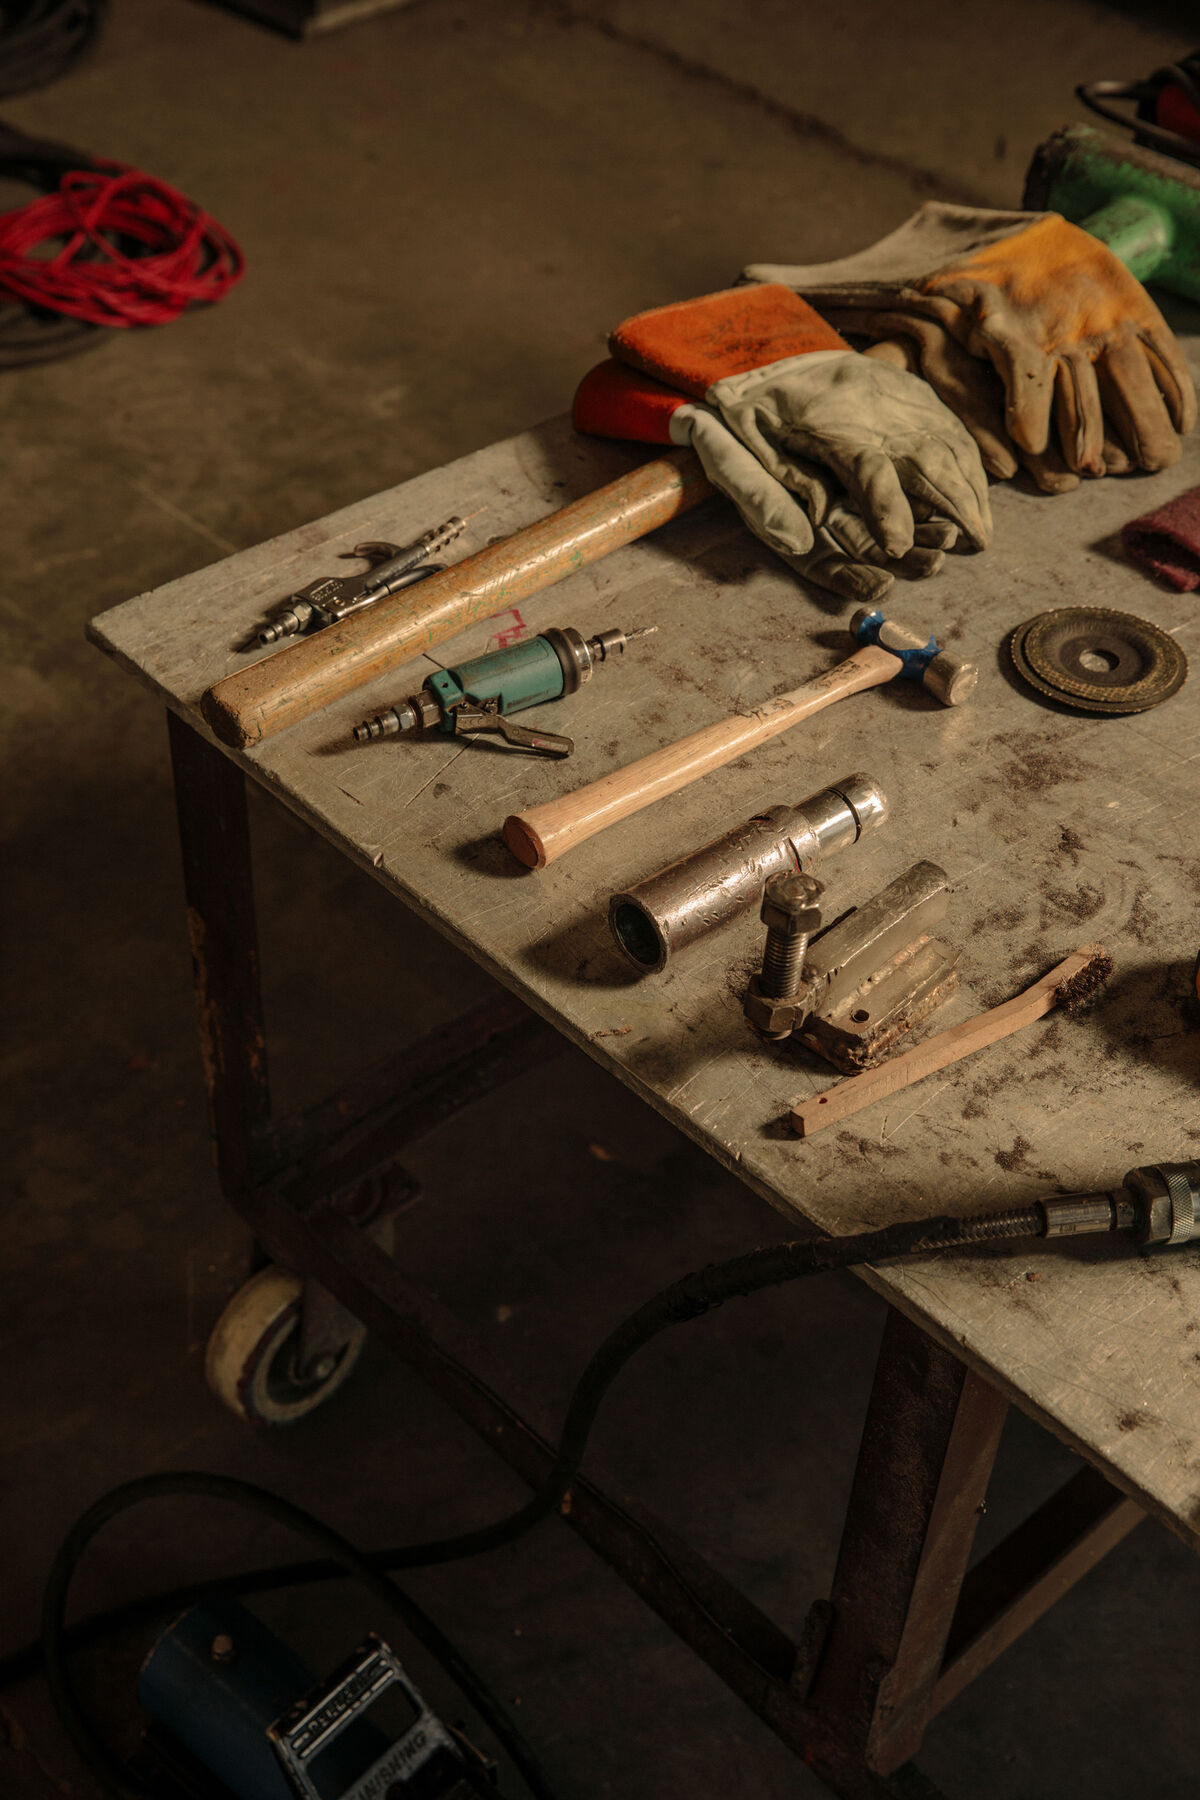 Finishing tools. Photo by Ricky Rhodes for Artsy.